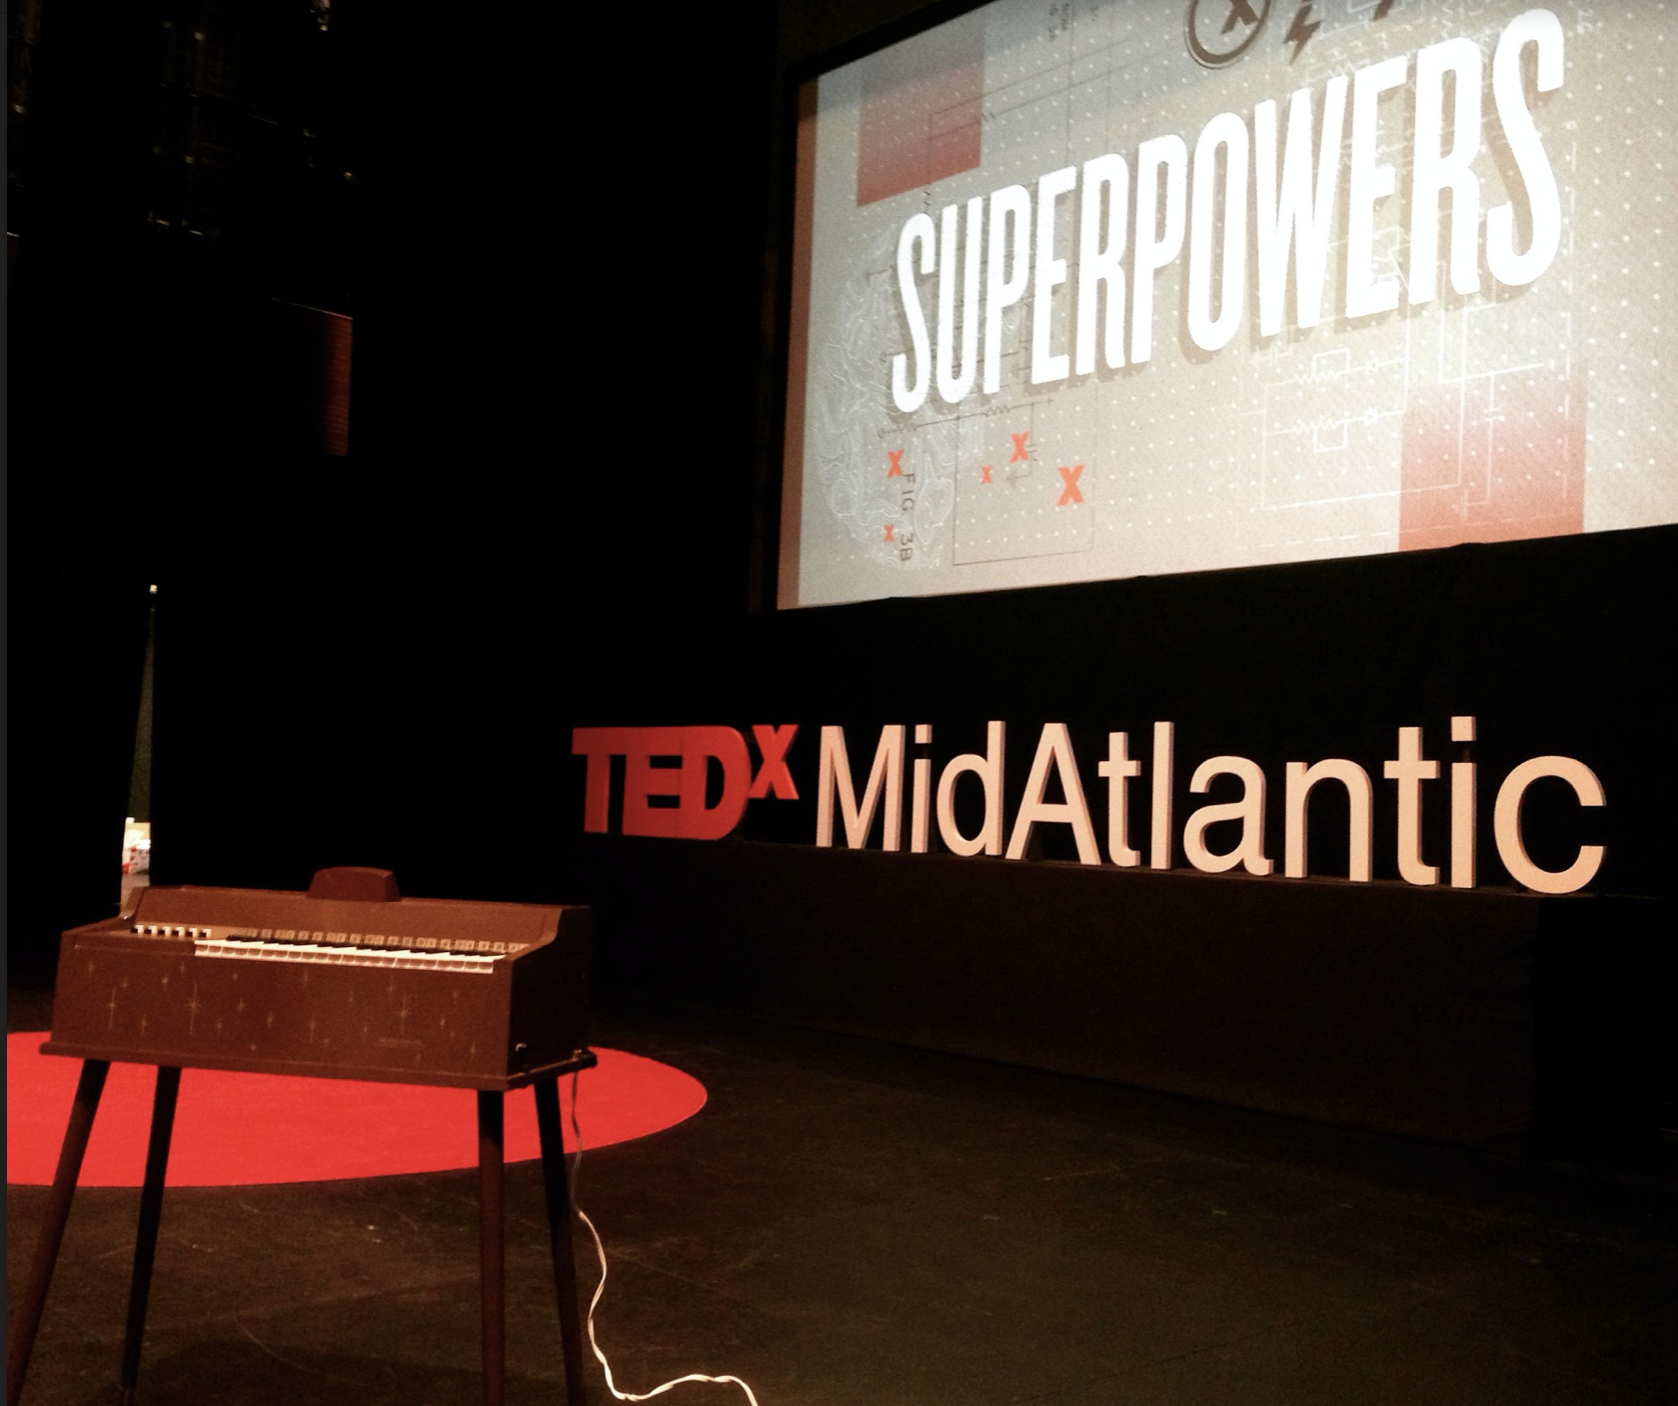 """A brown vintage toy organ with gold decal stands on the stage of TEDxMidAtlantic, with a red circle carpet behind it, the text """"TEDxMidAtlantic,"""" and image projected overheard with the word """"SUPERPOWERS."""""""